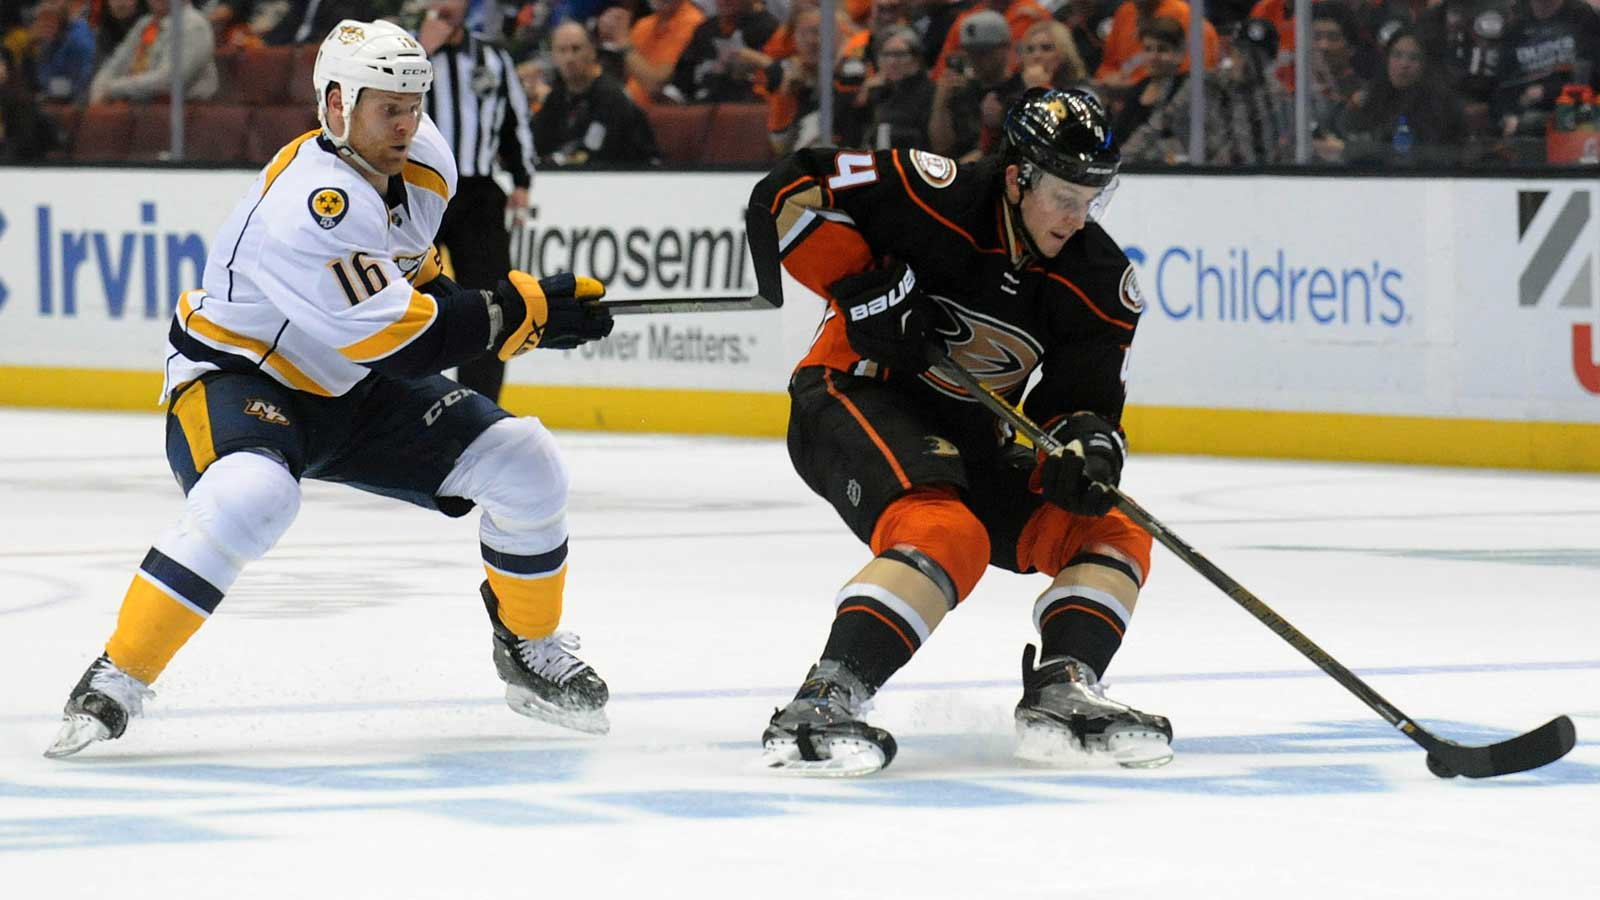 Ducks down 2-0 after loss to Predators Sunday